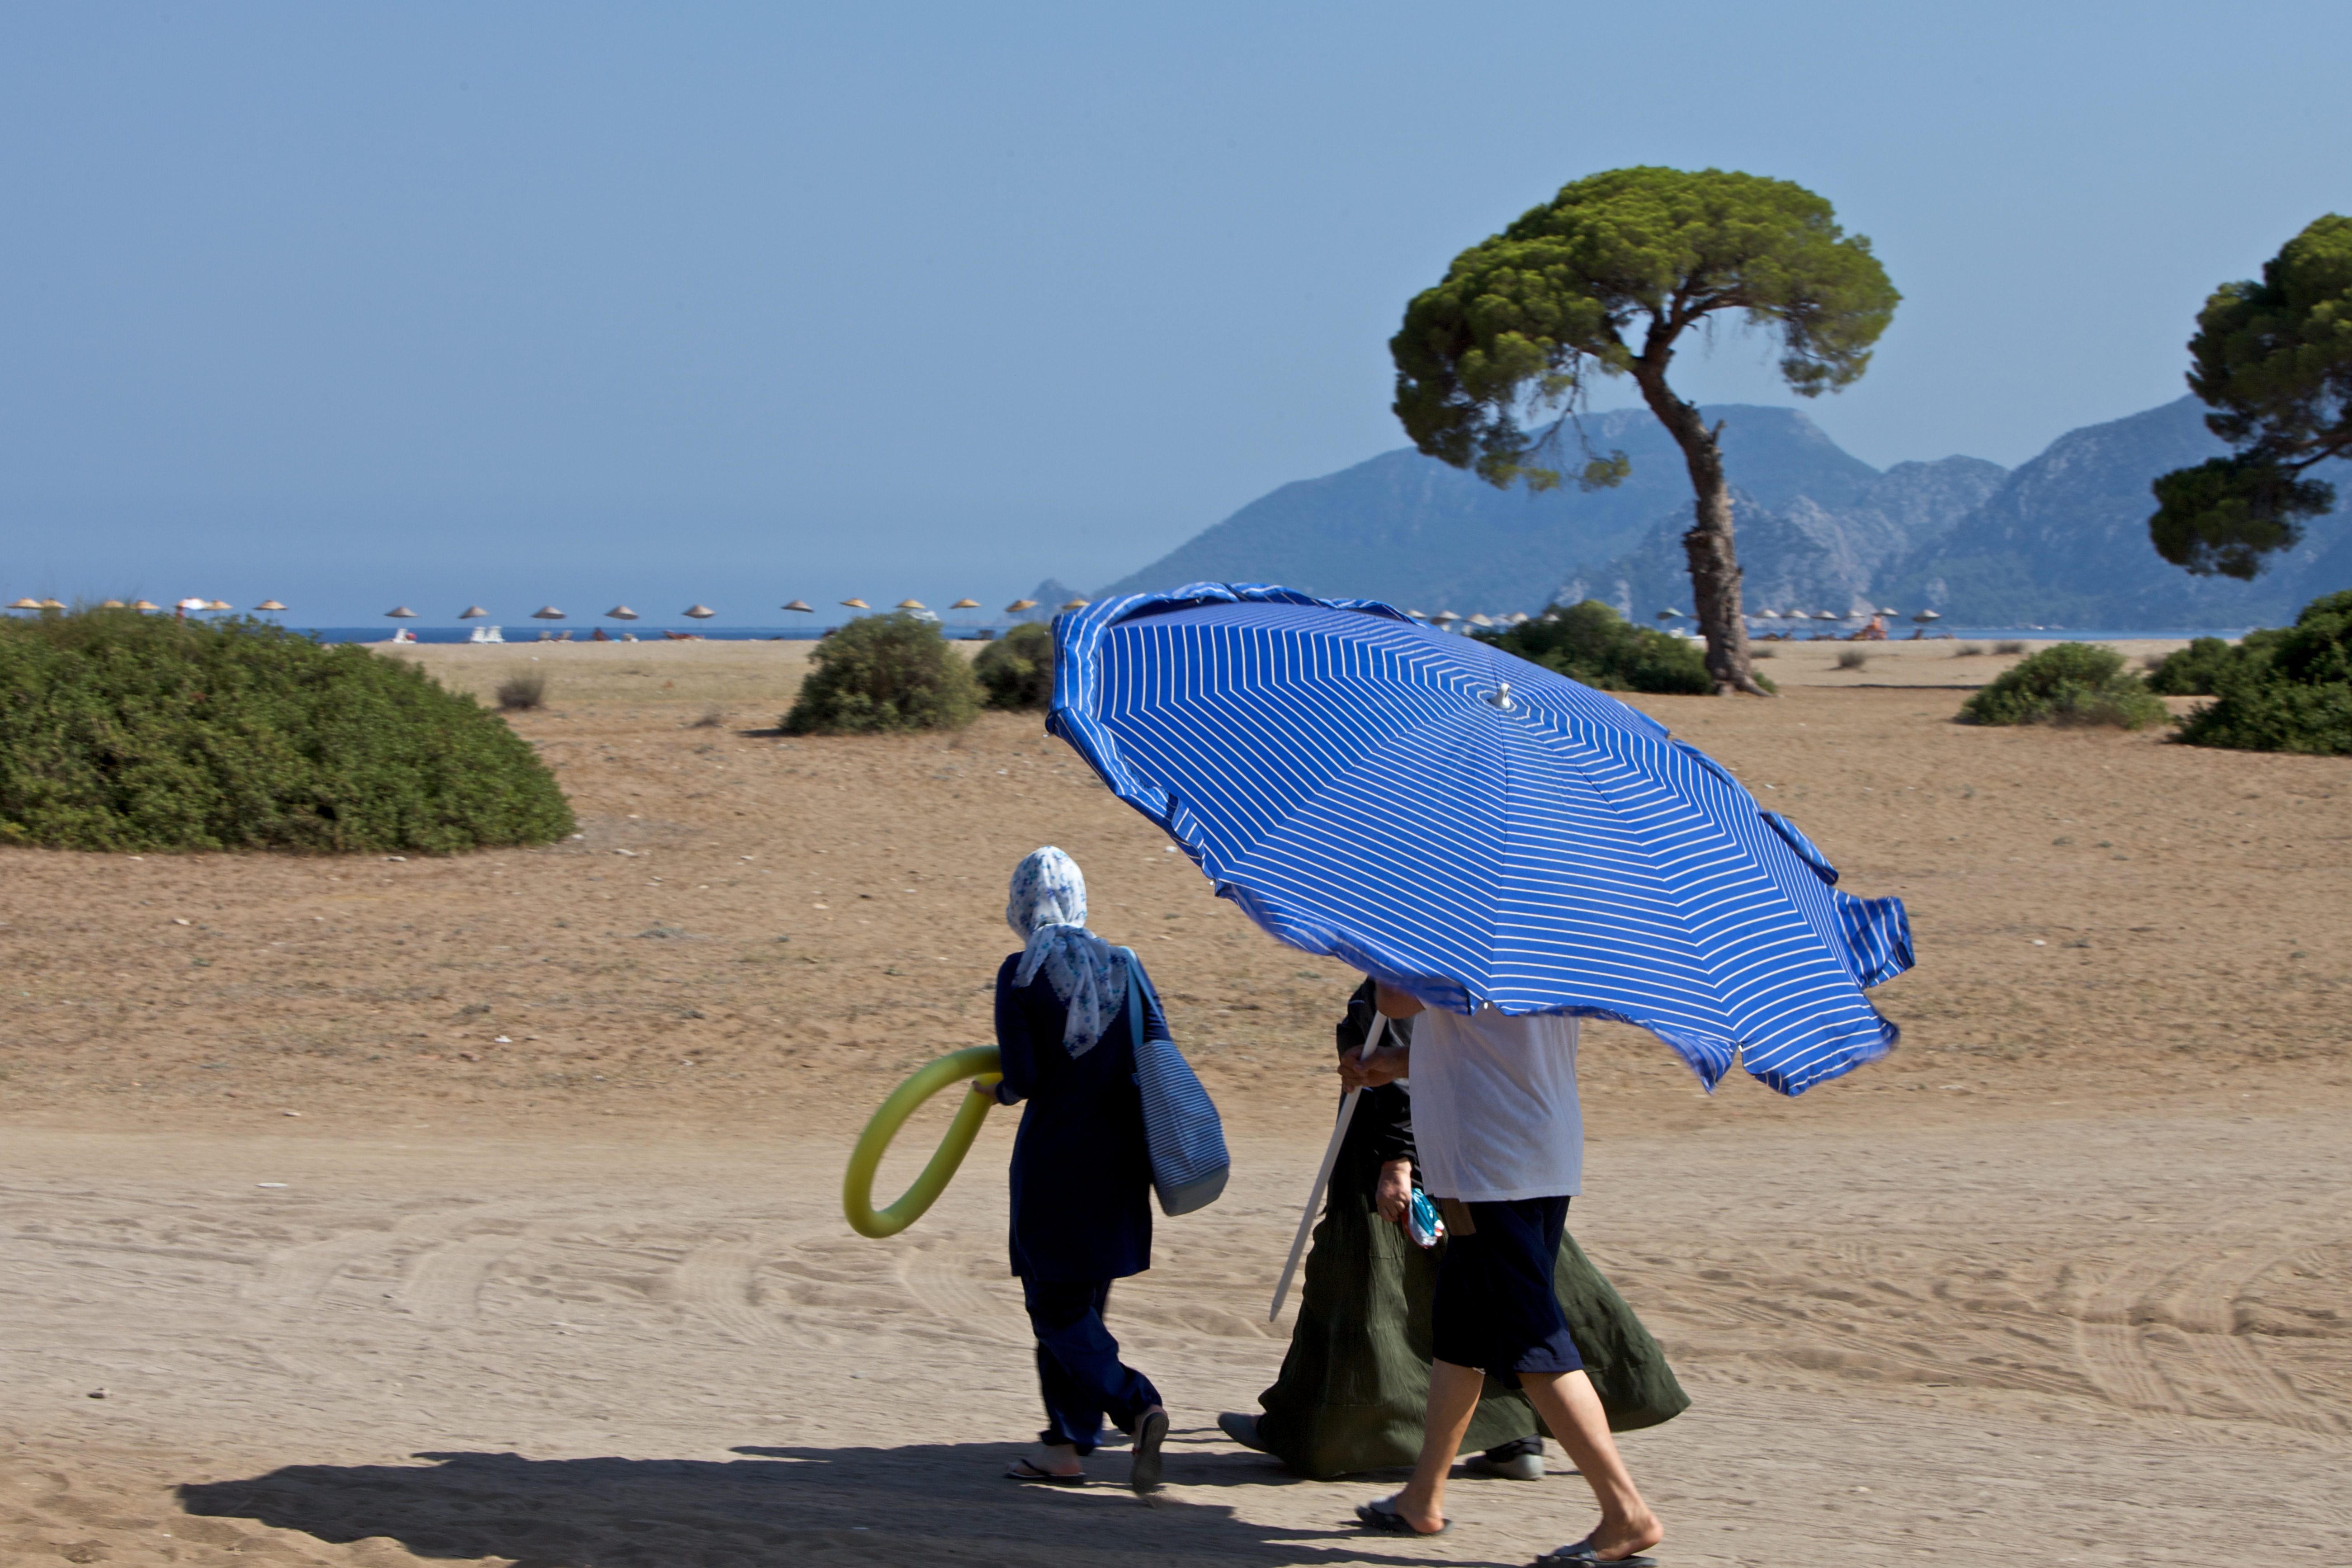 Tourist arriving to the beach